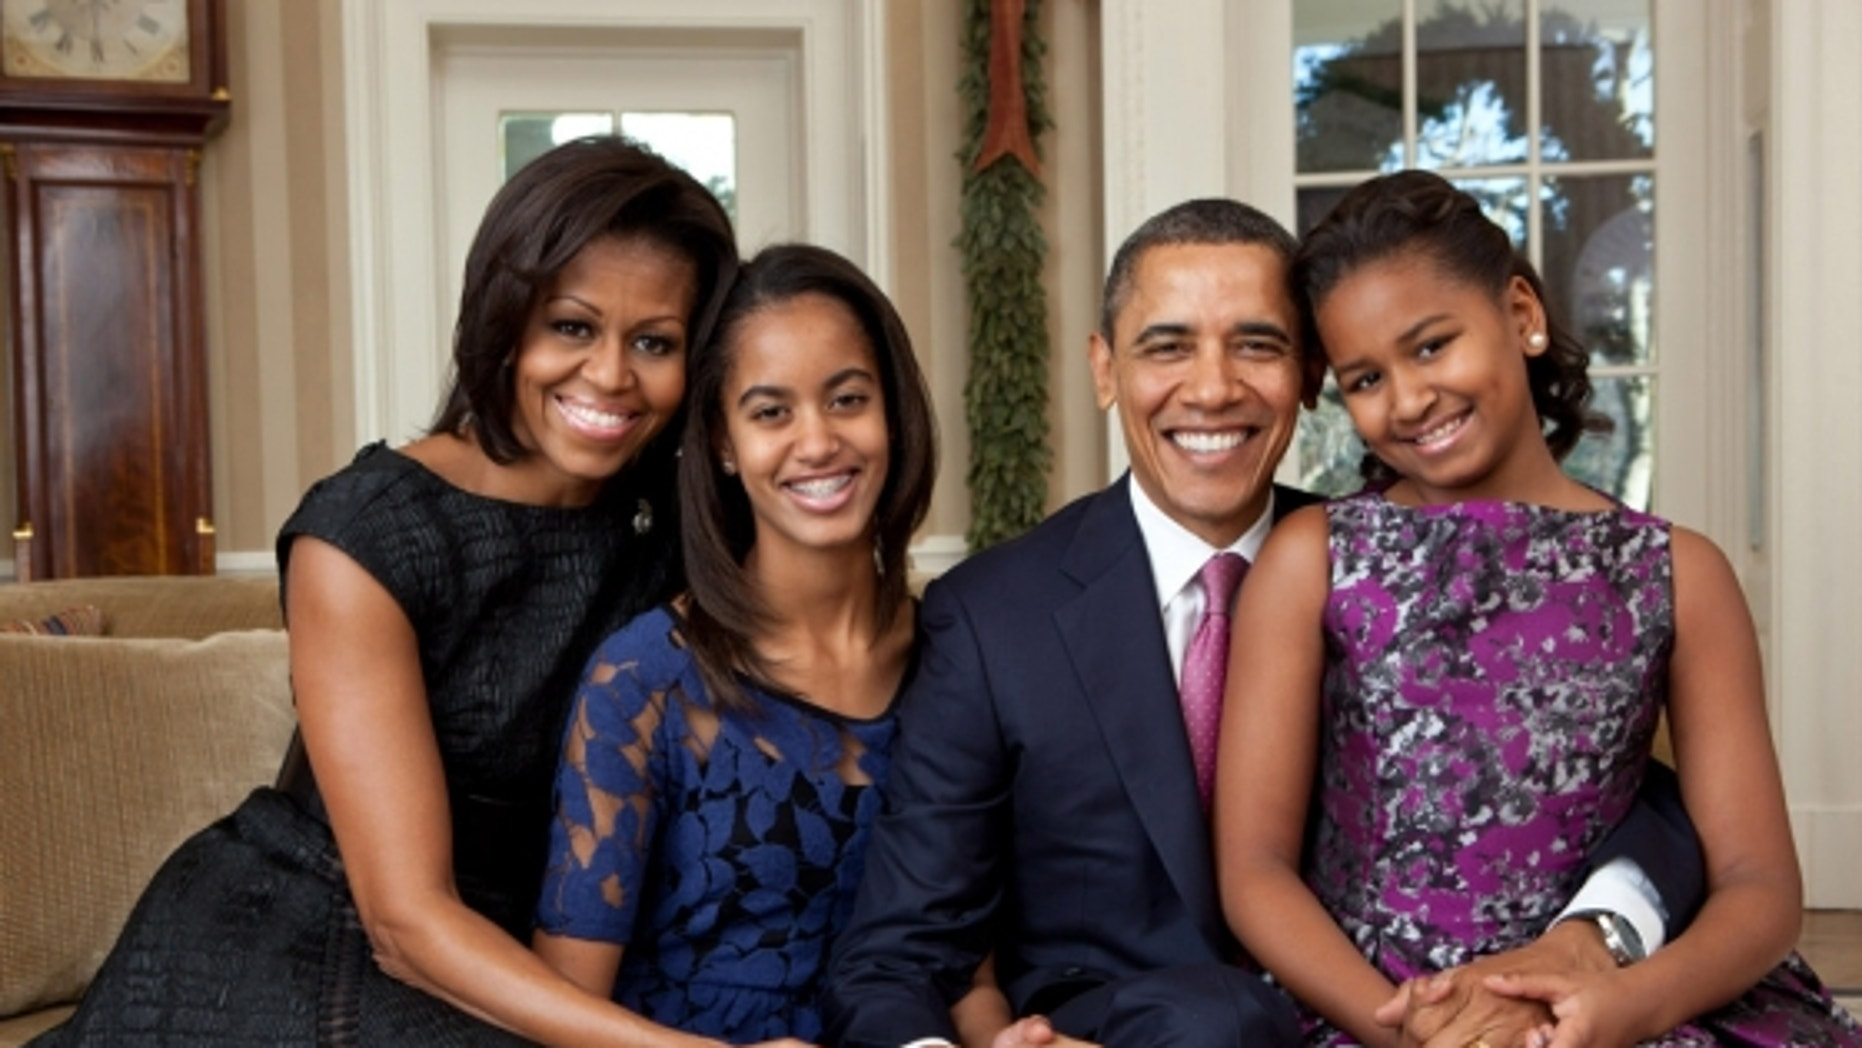 President Barack Obama, First Lady Michelle Obama, and their daughters, Malia, left, and Sasha, right, sit for a family portrait in the Oval Office, Dec. 11, 2011. (Official White House Photo by Pete Souza)